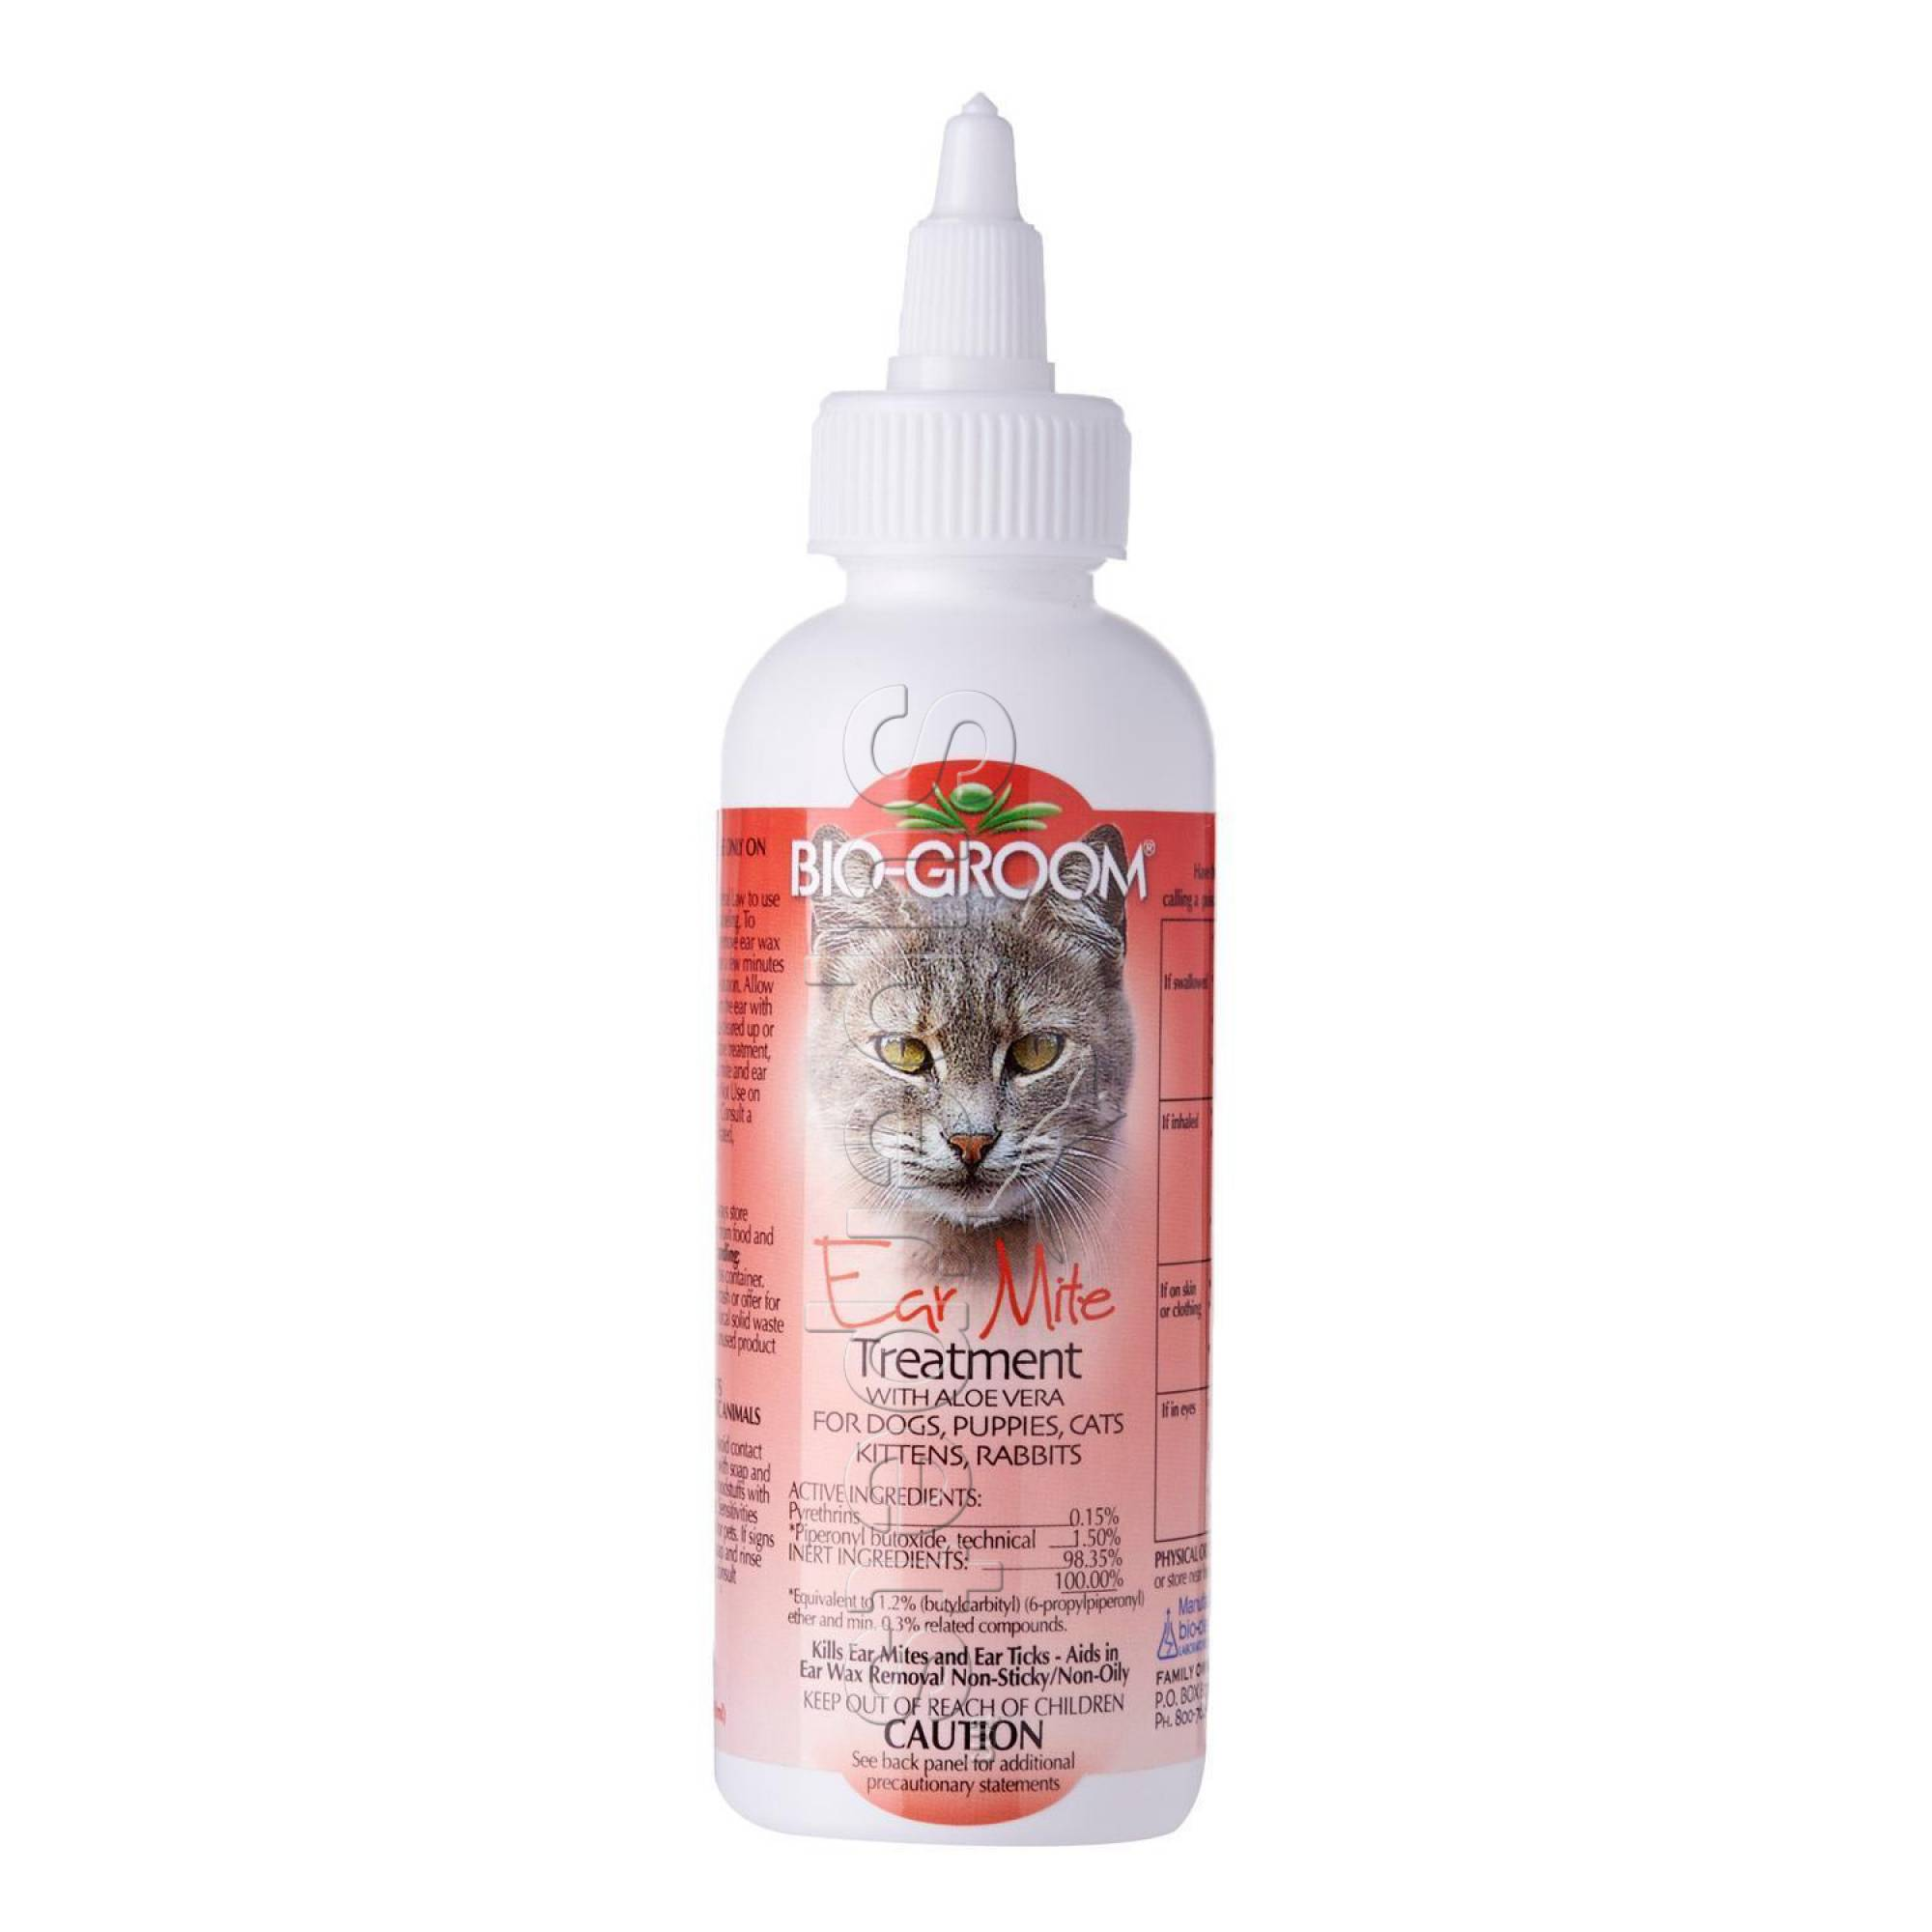 Bio-Groom Ear Mite Treatment with Aloe Vera for Dogs, Puppies, Cats, Kittens, Rabbits 4oz